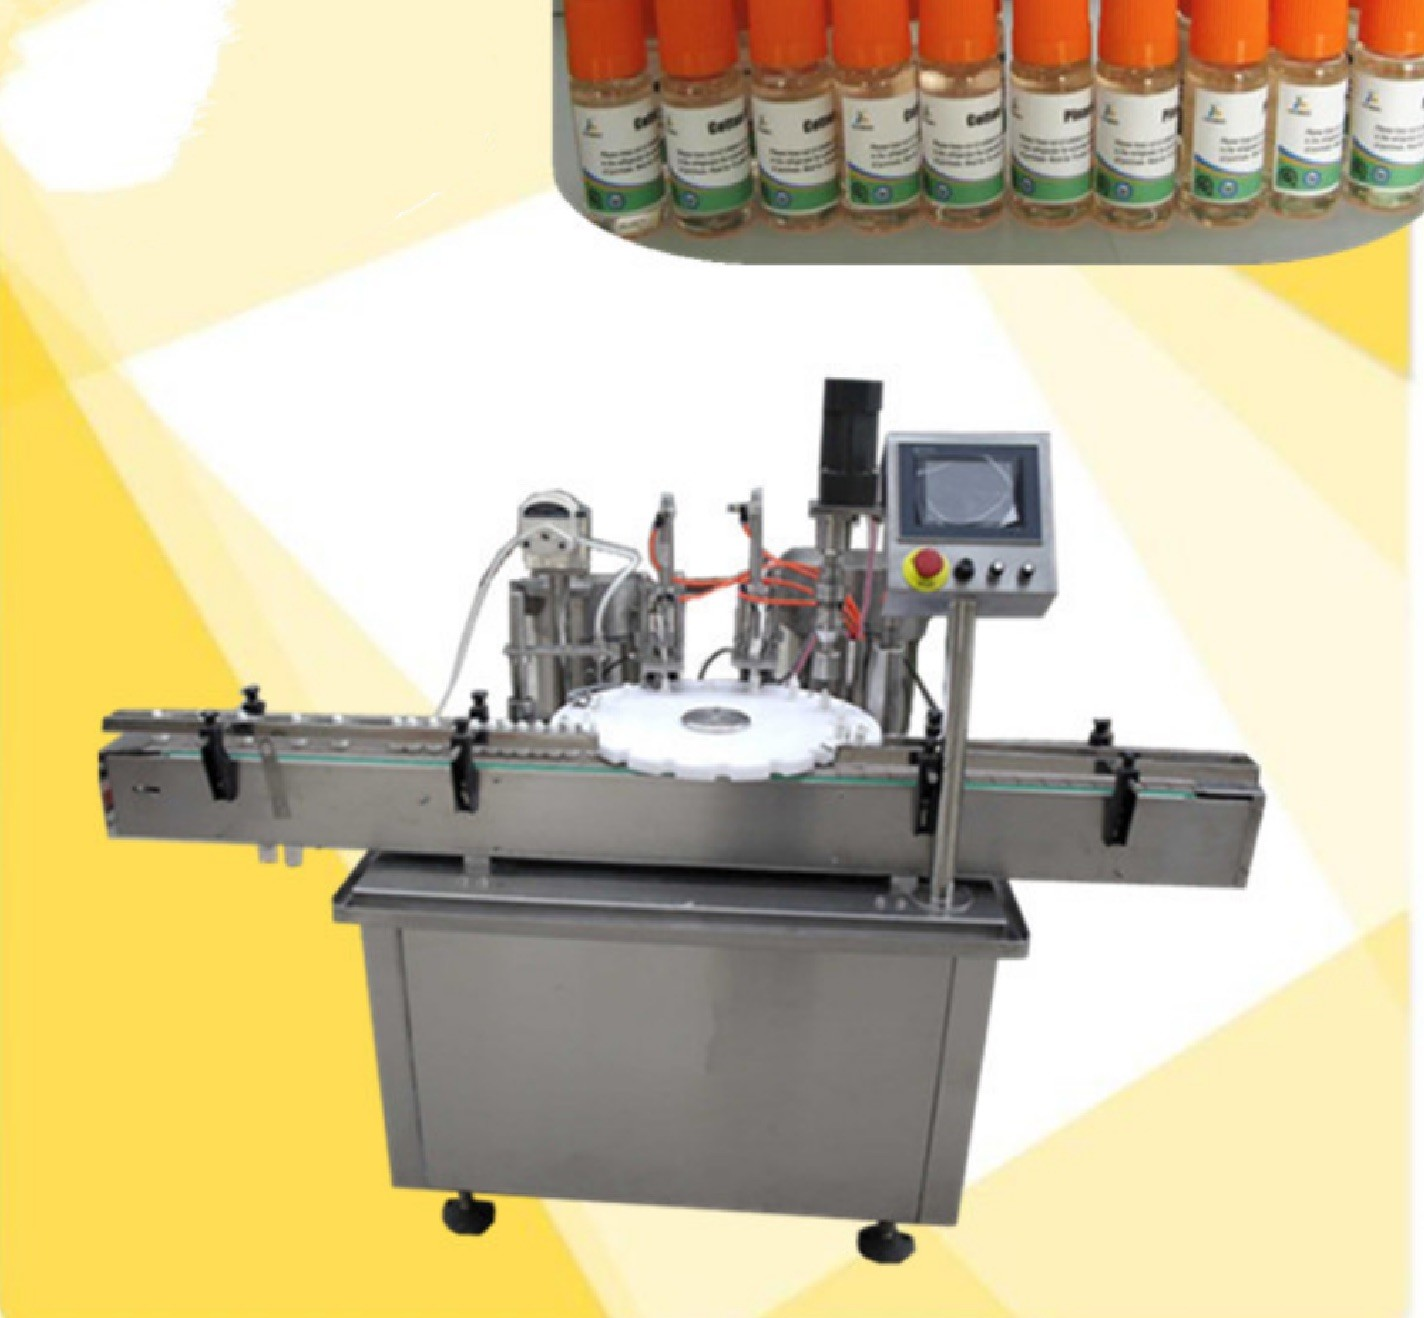 5ml 10ml 15ml 30ml Juice Bottle Filling Machine With Glass Bottle / Plastic Bottle